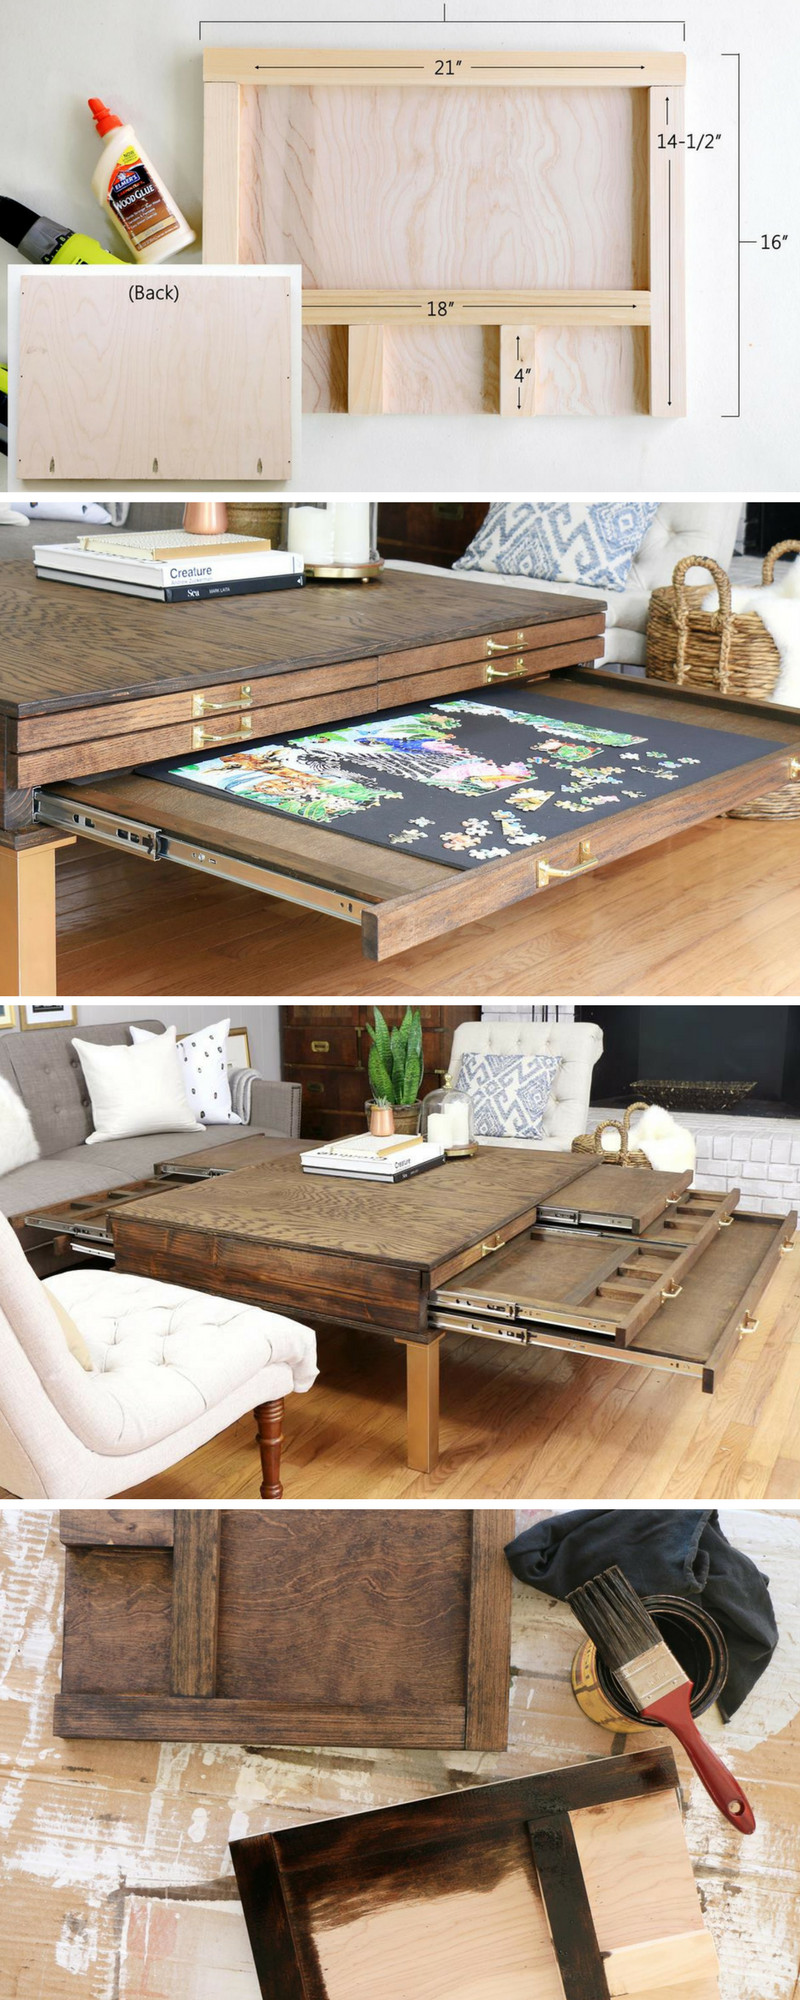 Best ideas about DIY Project Plans . Save or Pin How to Build a DIY Coffee Table with Pullouts for Board Now.